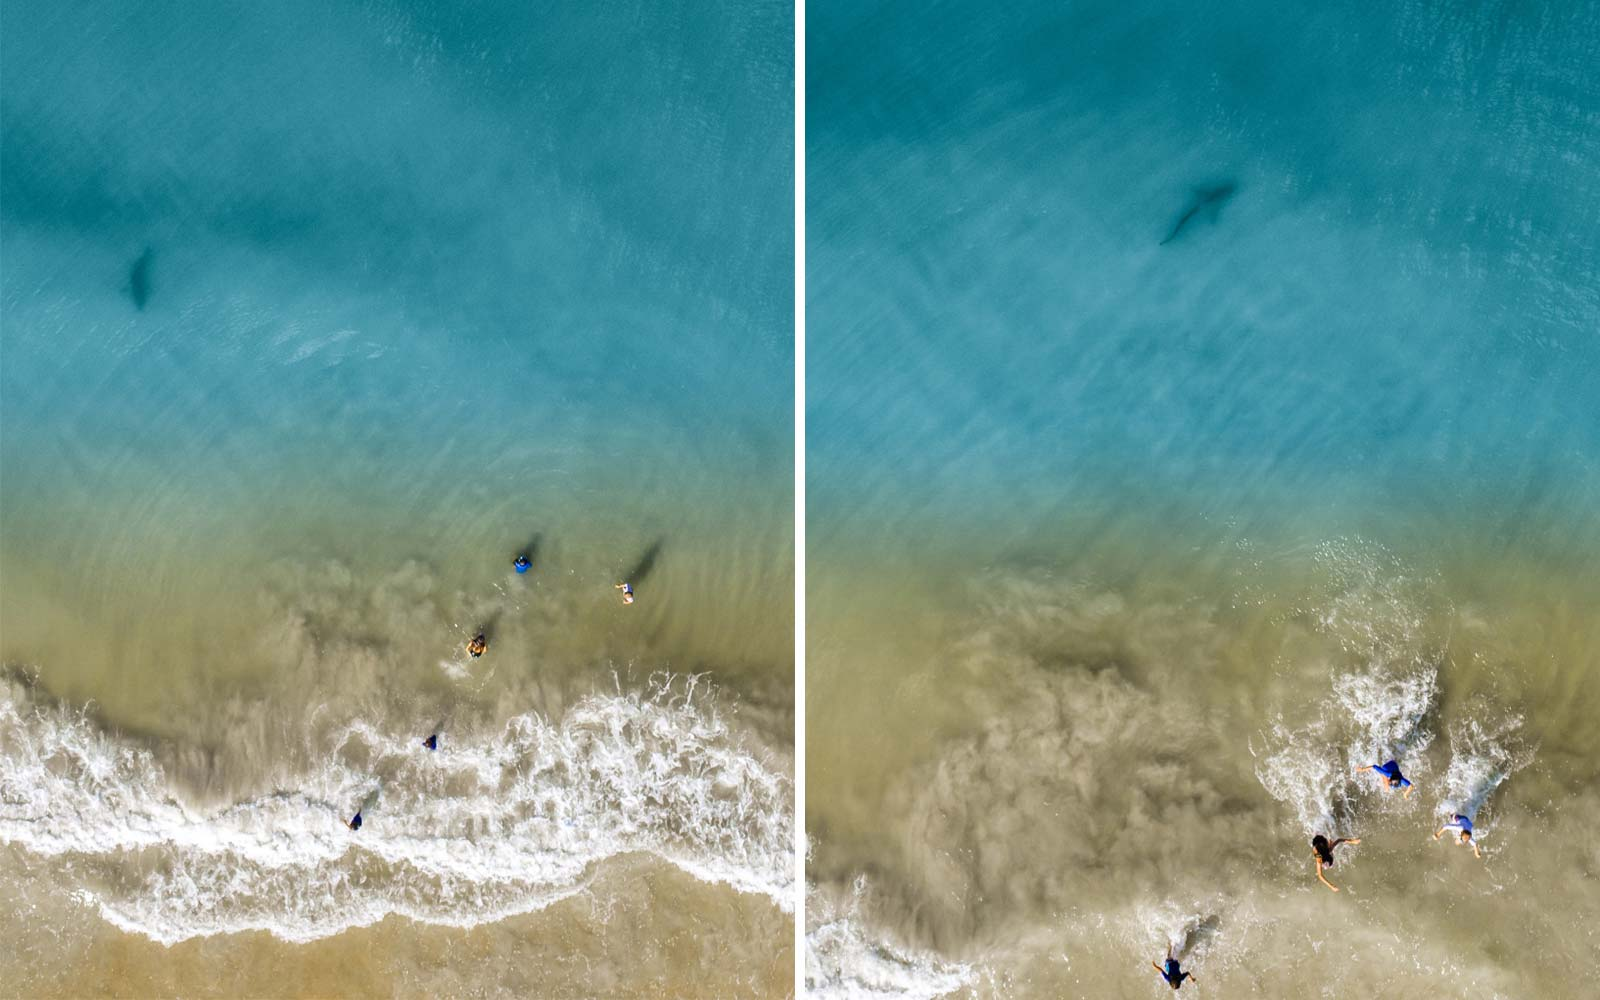 Man Captures Chilling Drone Images of Shark Lurking Near Children Swimming in the Ocean